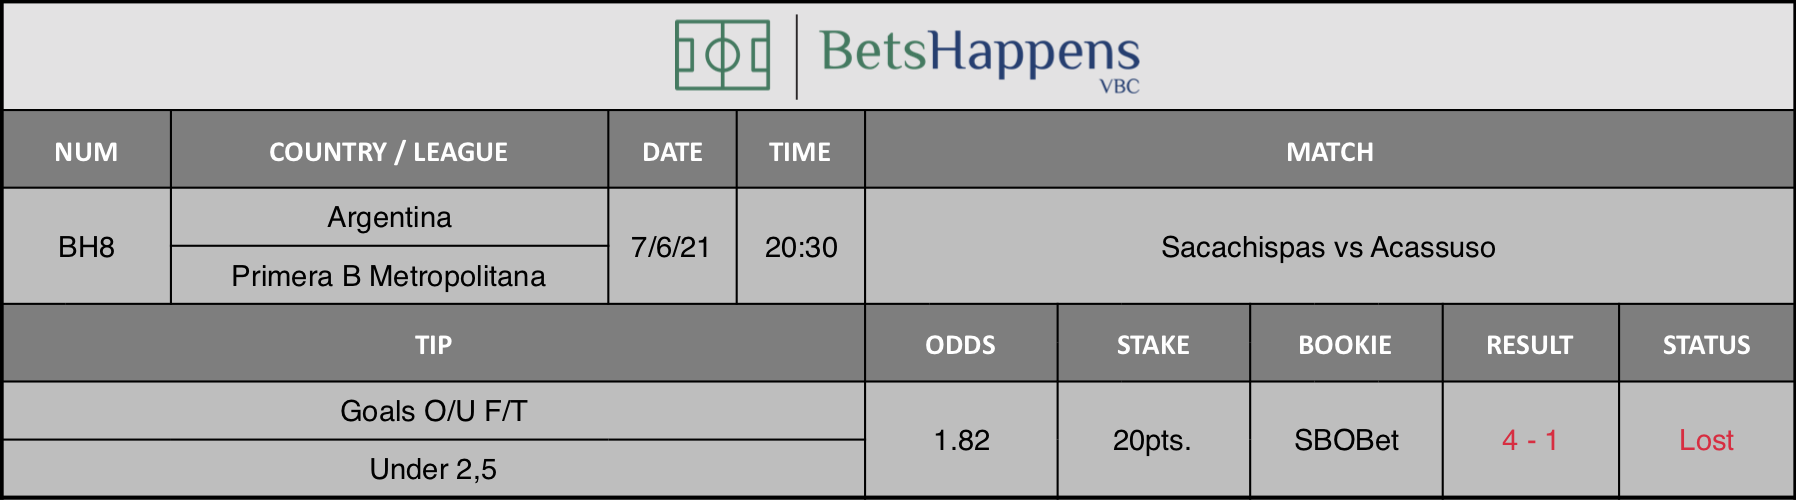 Results of our tip for the Sacachispas vs Acassuso Match Goals O/U F/T Under 2,5 is recommended.